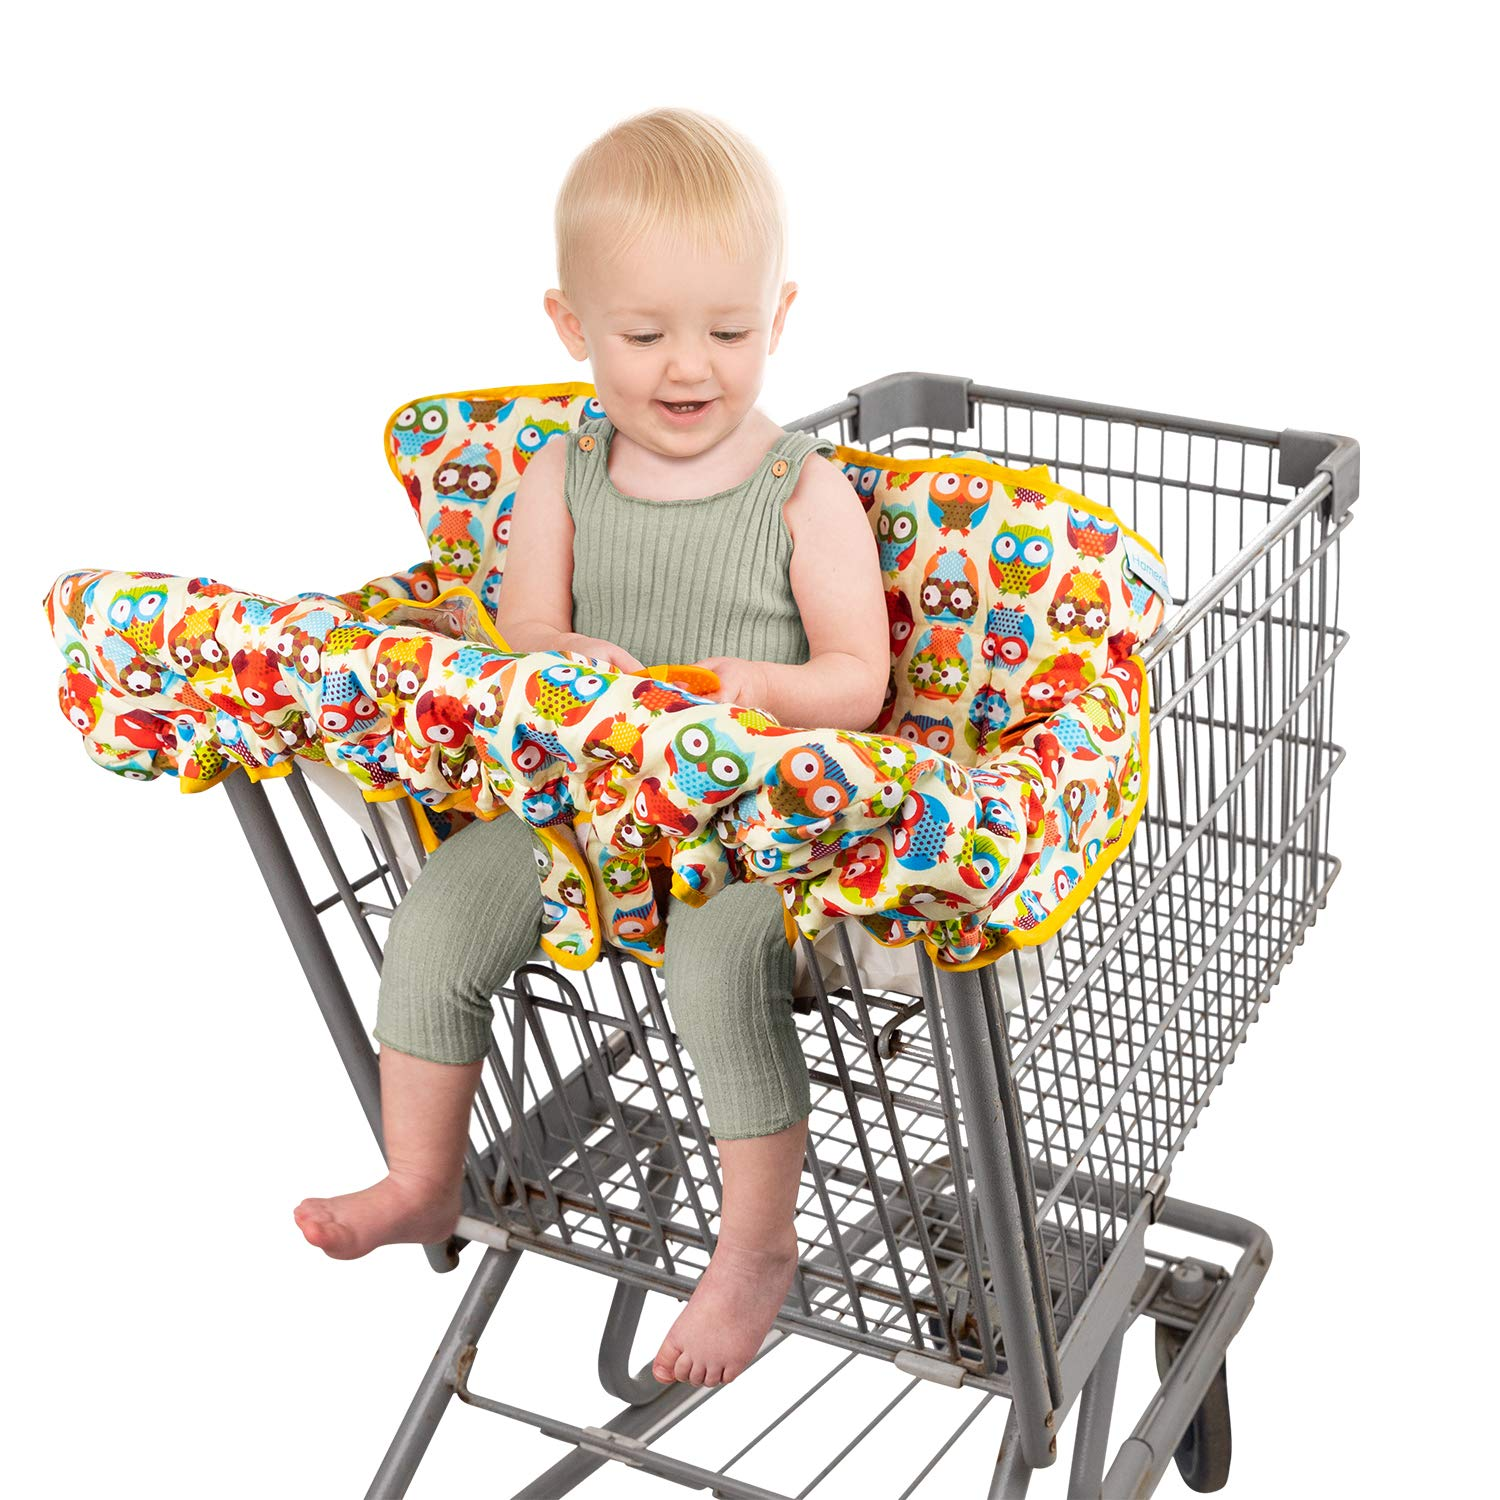 Homeries Shopping Cart Cover for Babies & Toddlers - High Chair Seat Cover for Restaurants & Homes - with 2 Toys Attached - for Boys & Girls